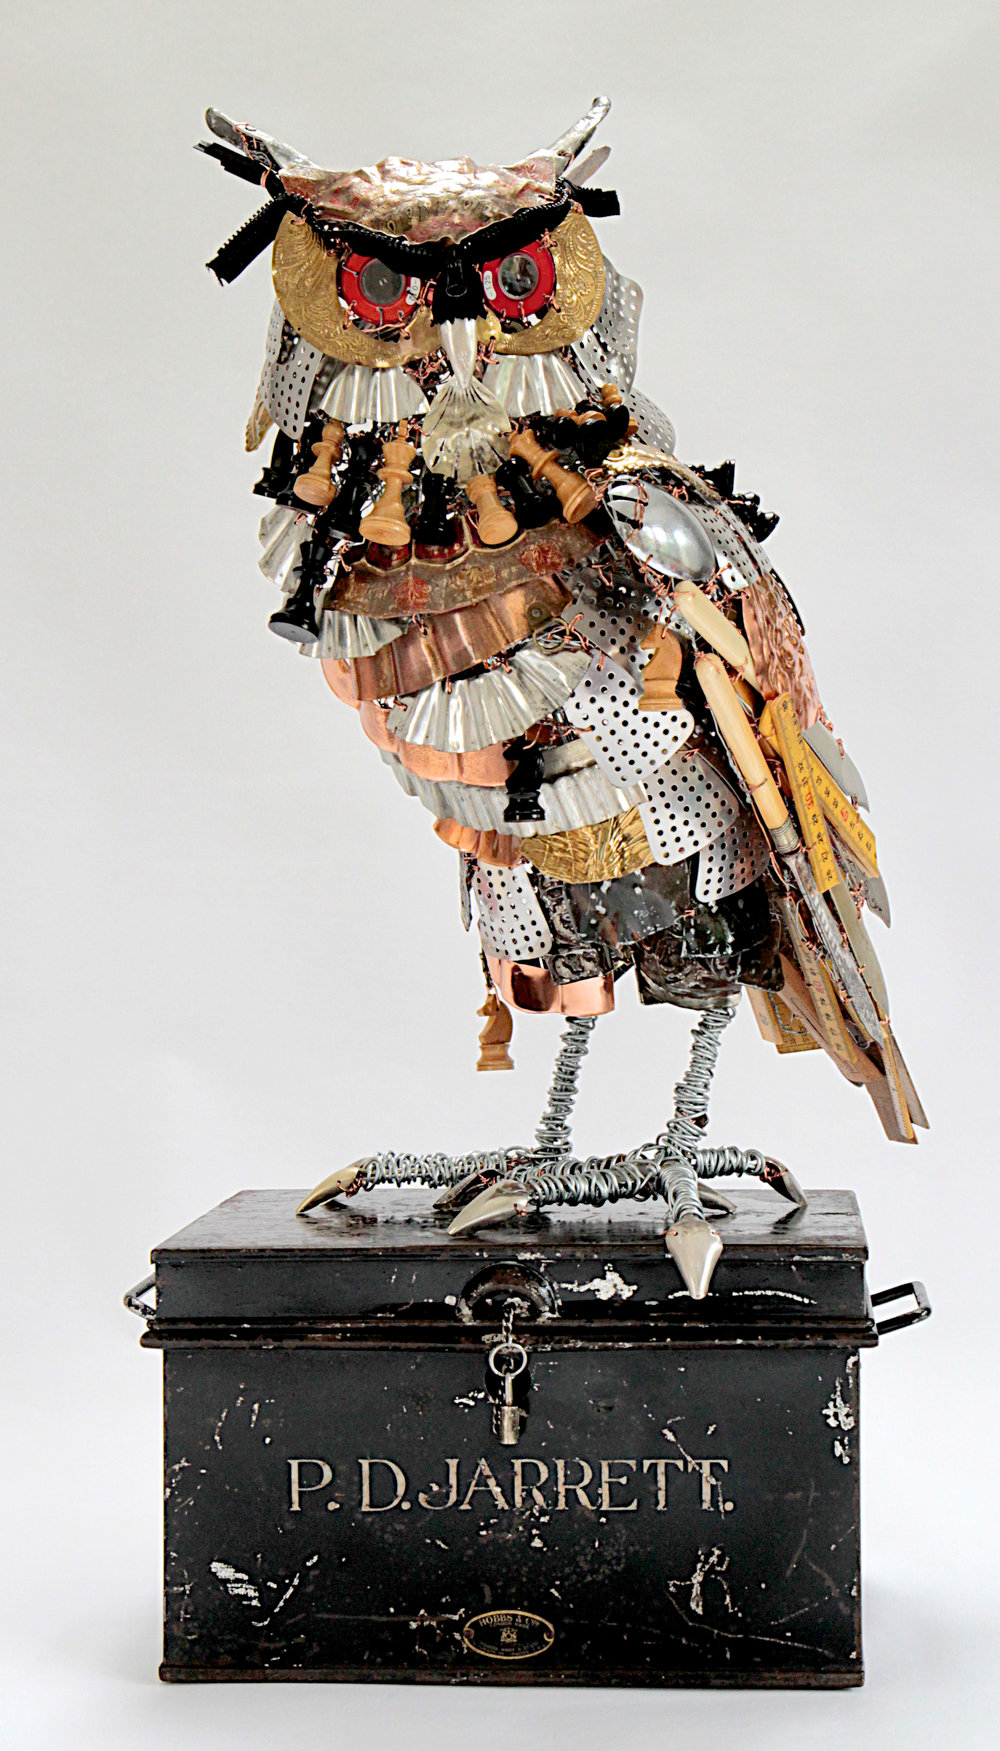 Eagle Owl (Bubo bubo)   a very arresting Owl from various found materials residing on his own Deed box